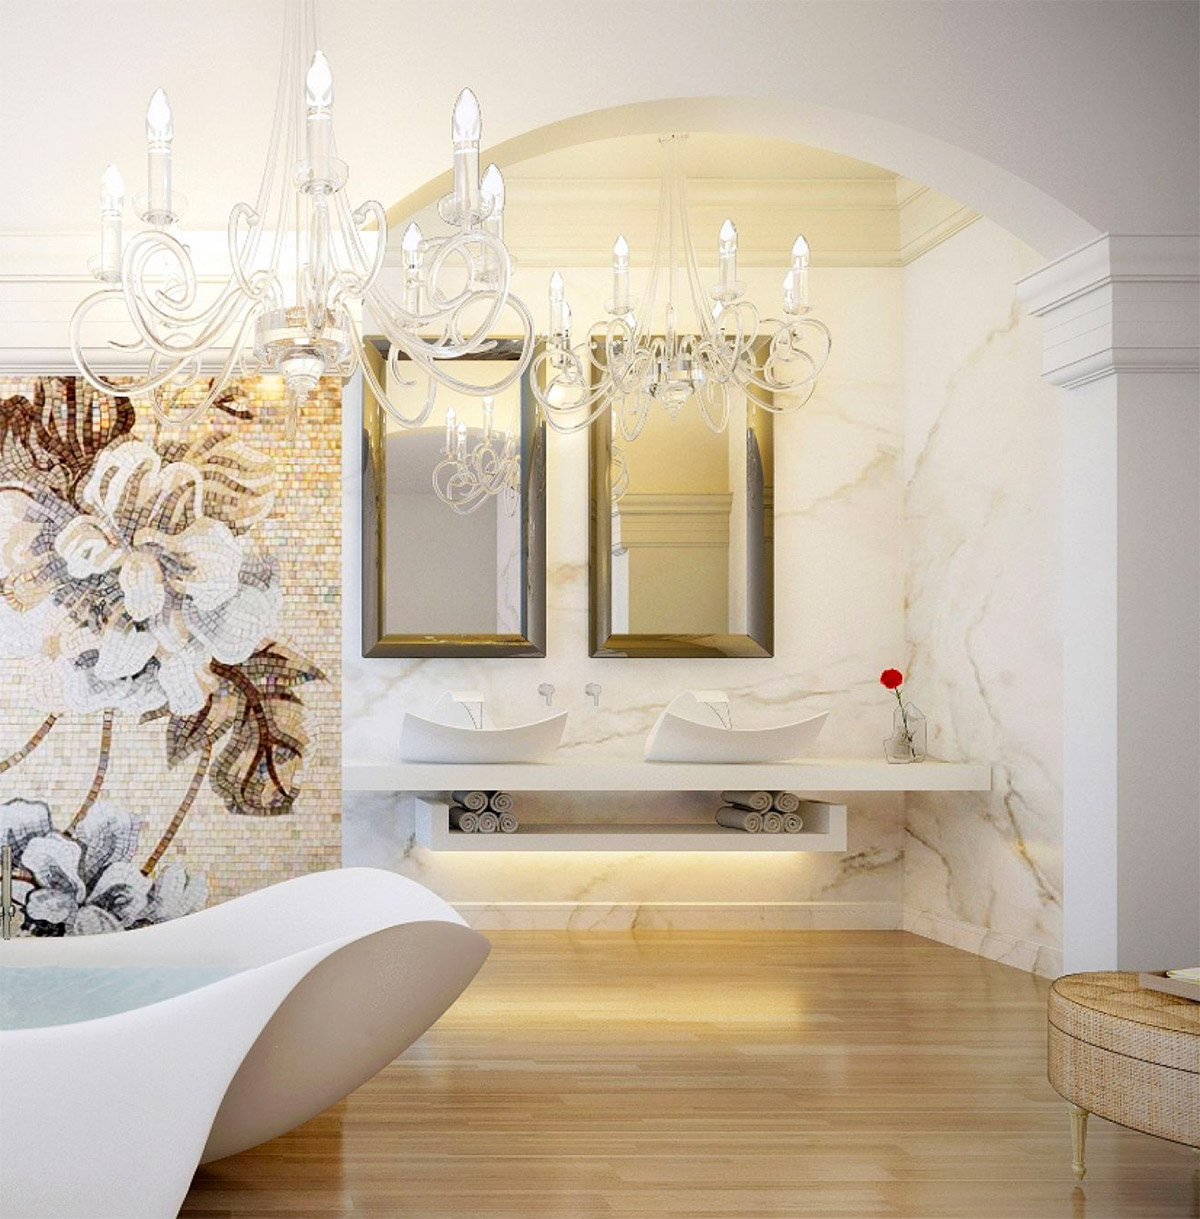 50 Luxury Bathrooms And Tips You Can Copy From Them images 35